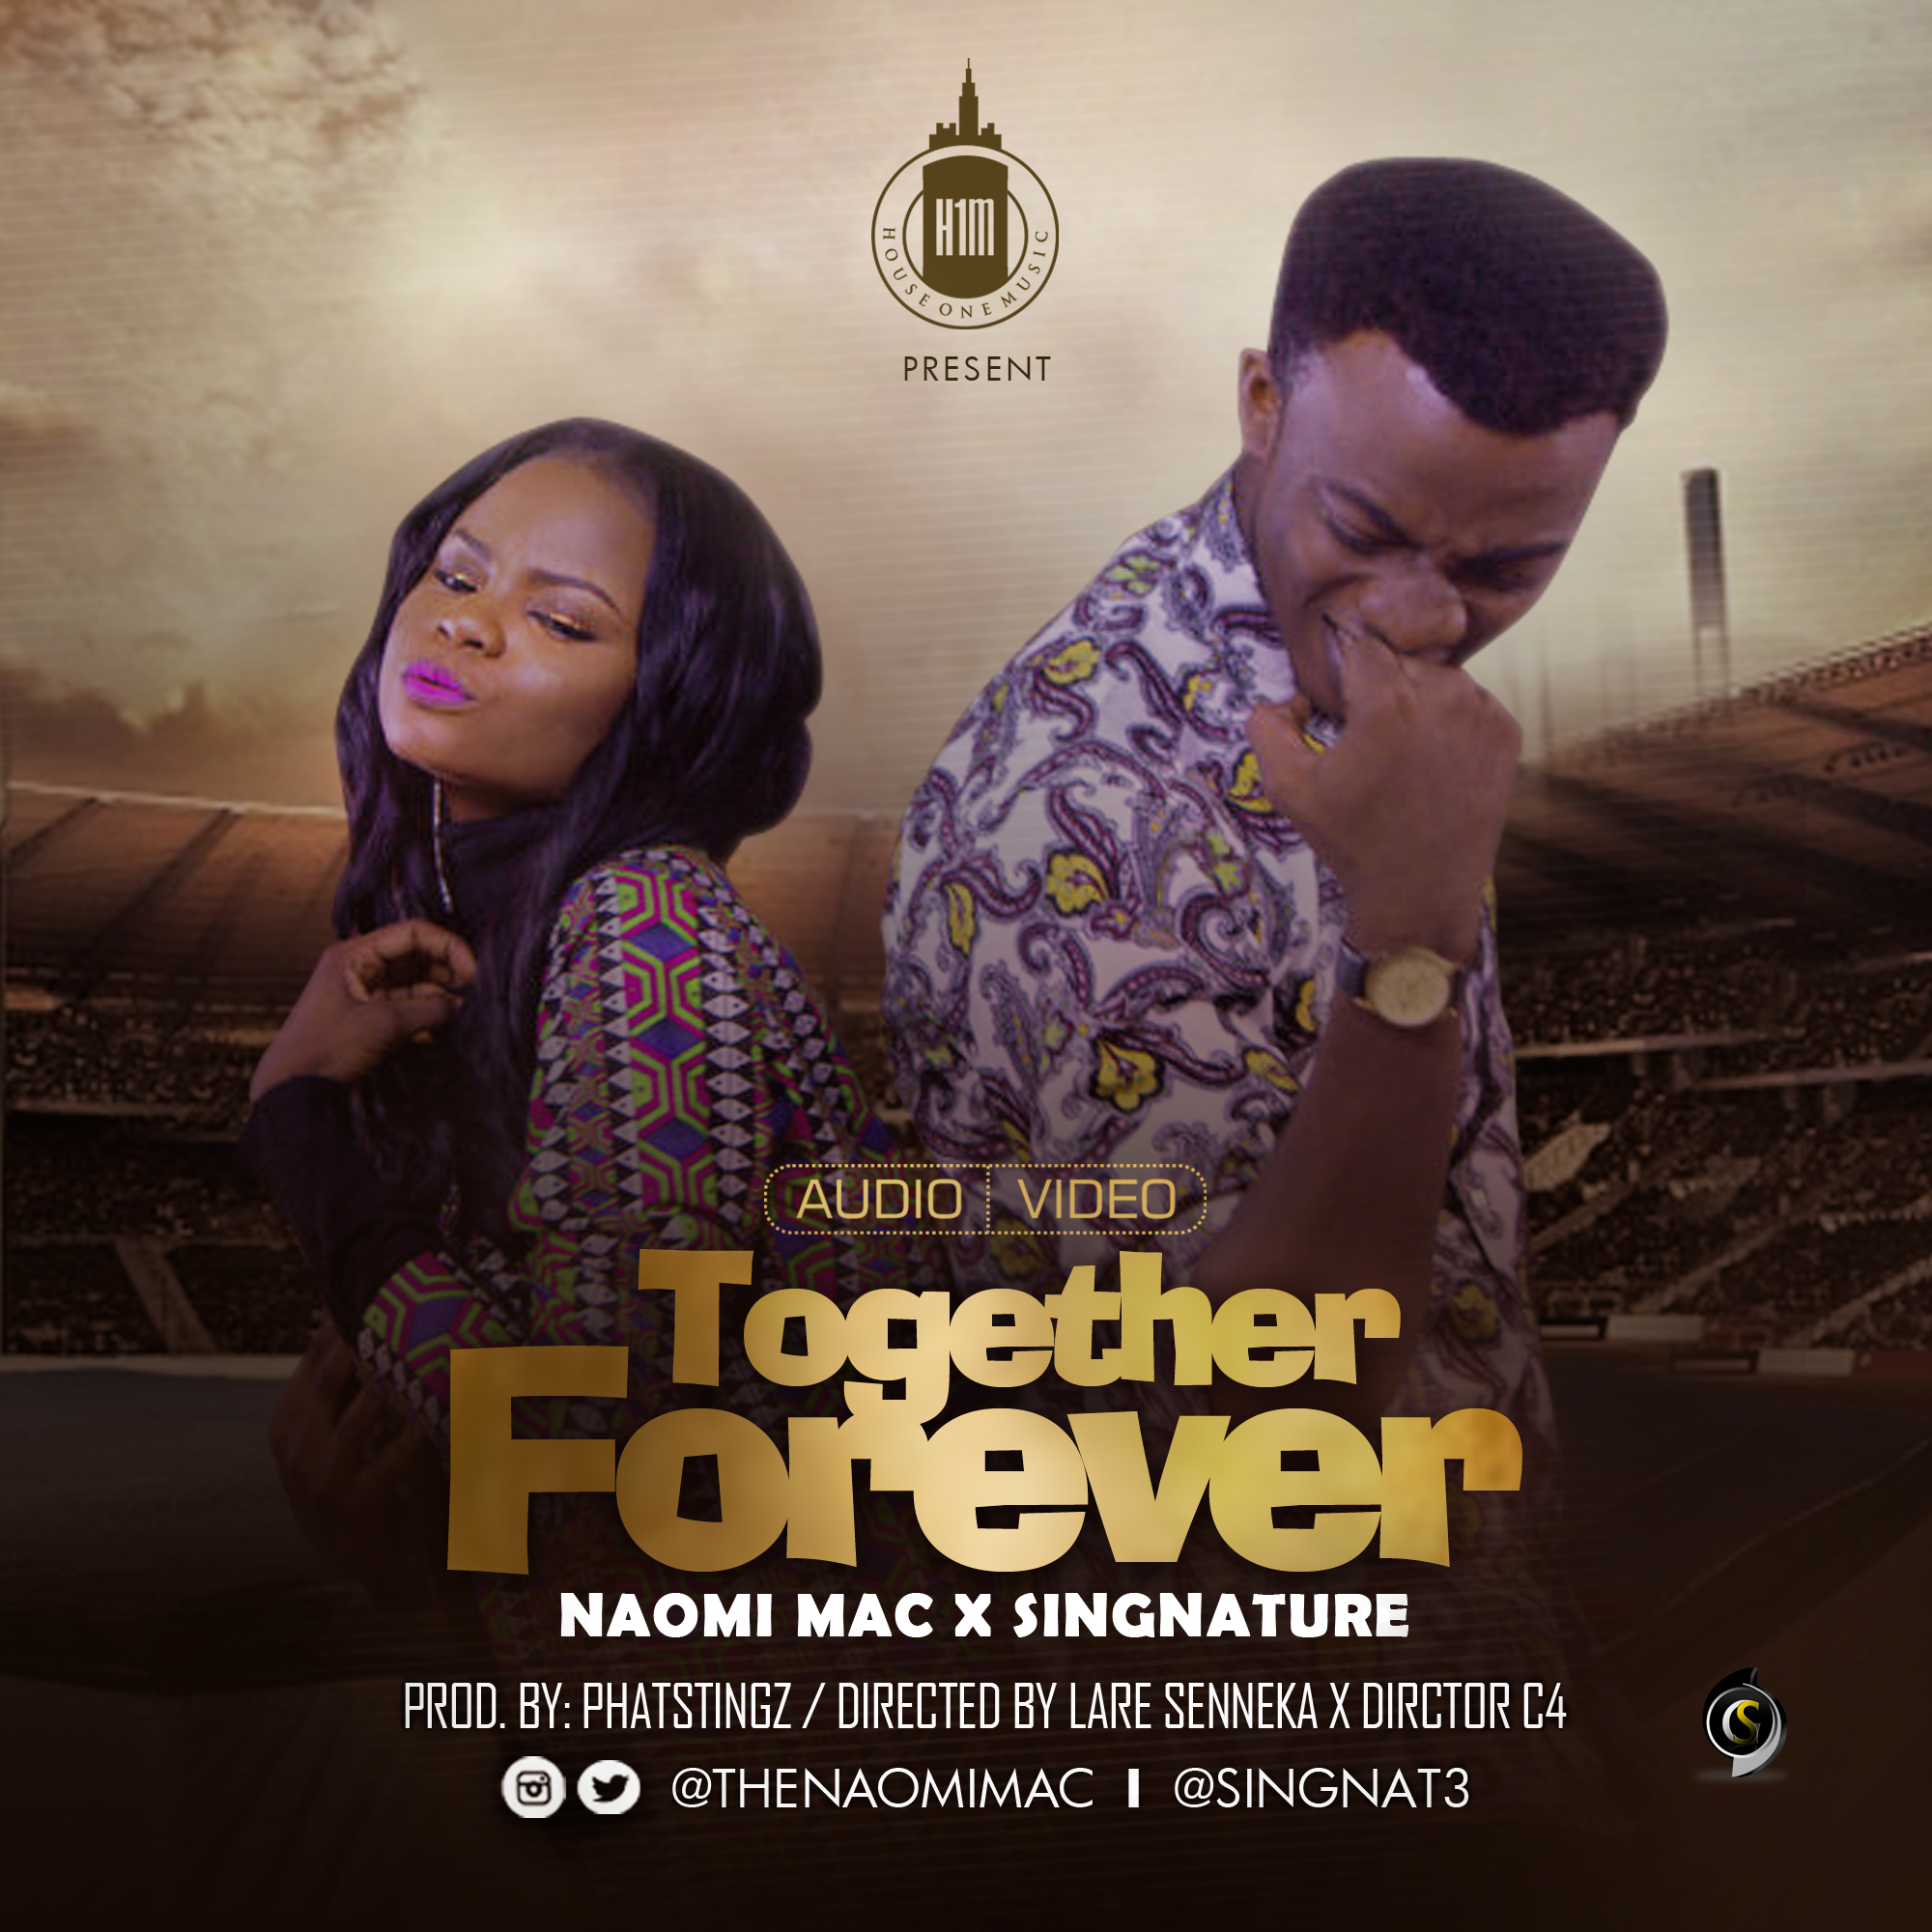 VIDEO: House One Music - Together Forever Ft. Naomi Mac X SingNature (prod. PhatStingz)